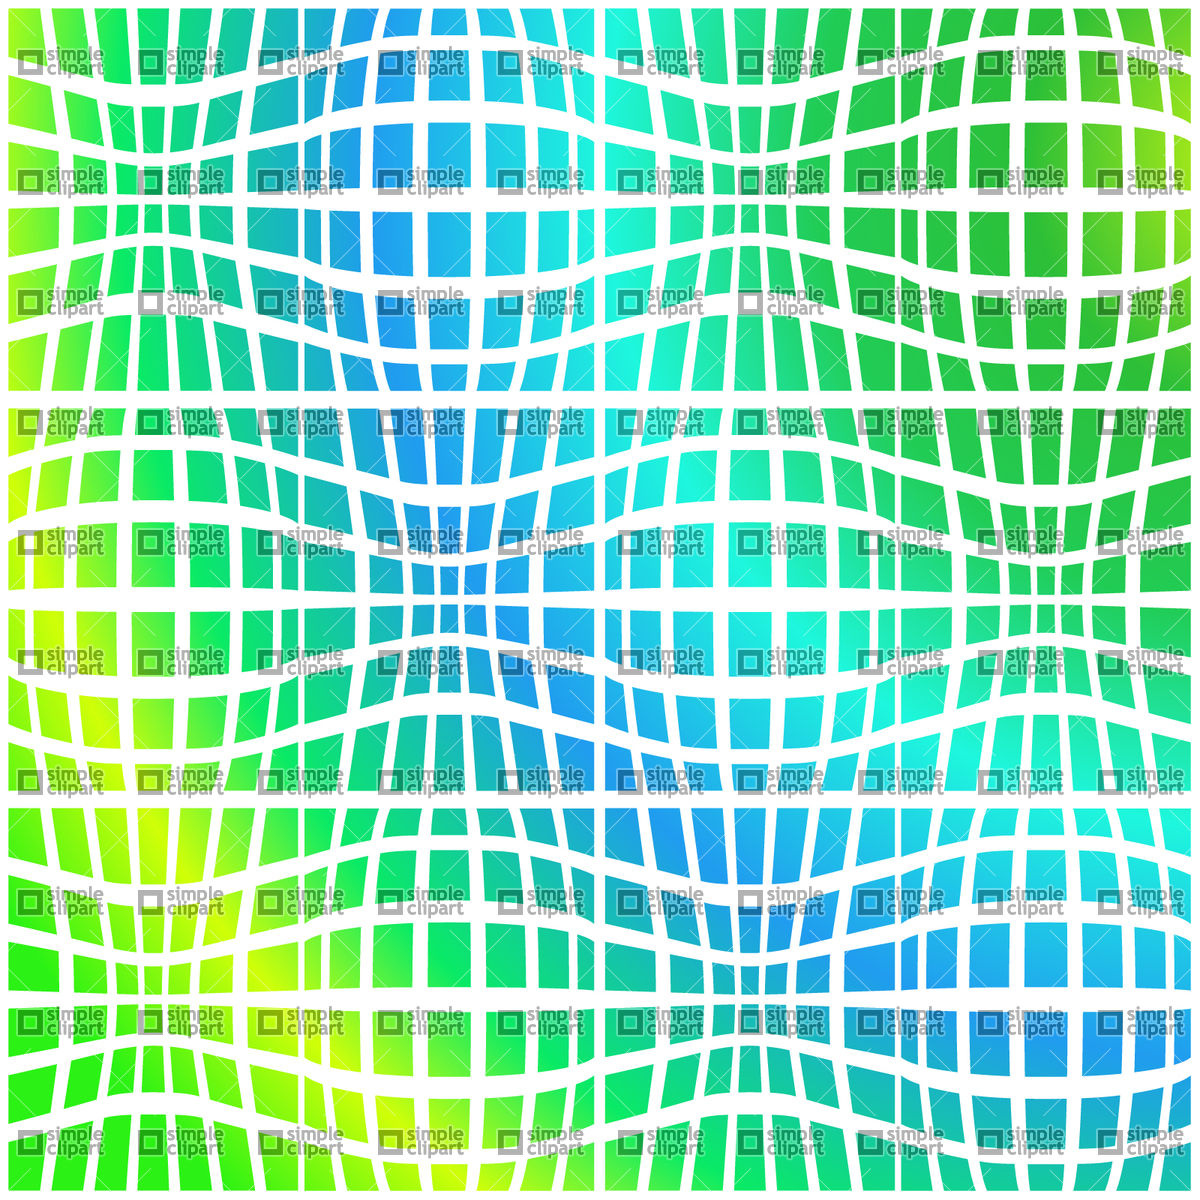 Checkered psychedelic distorted gradient background Vector Image.